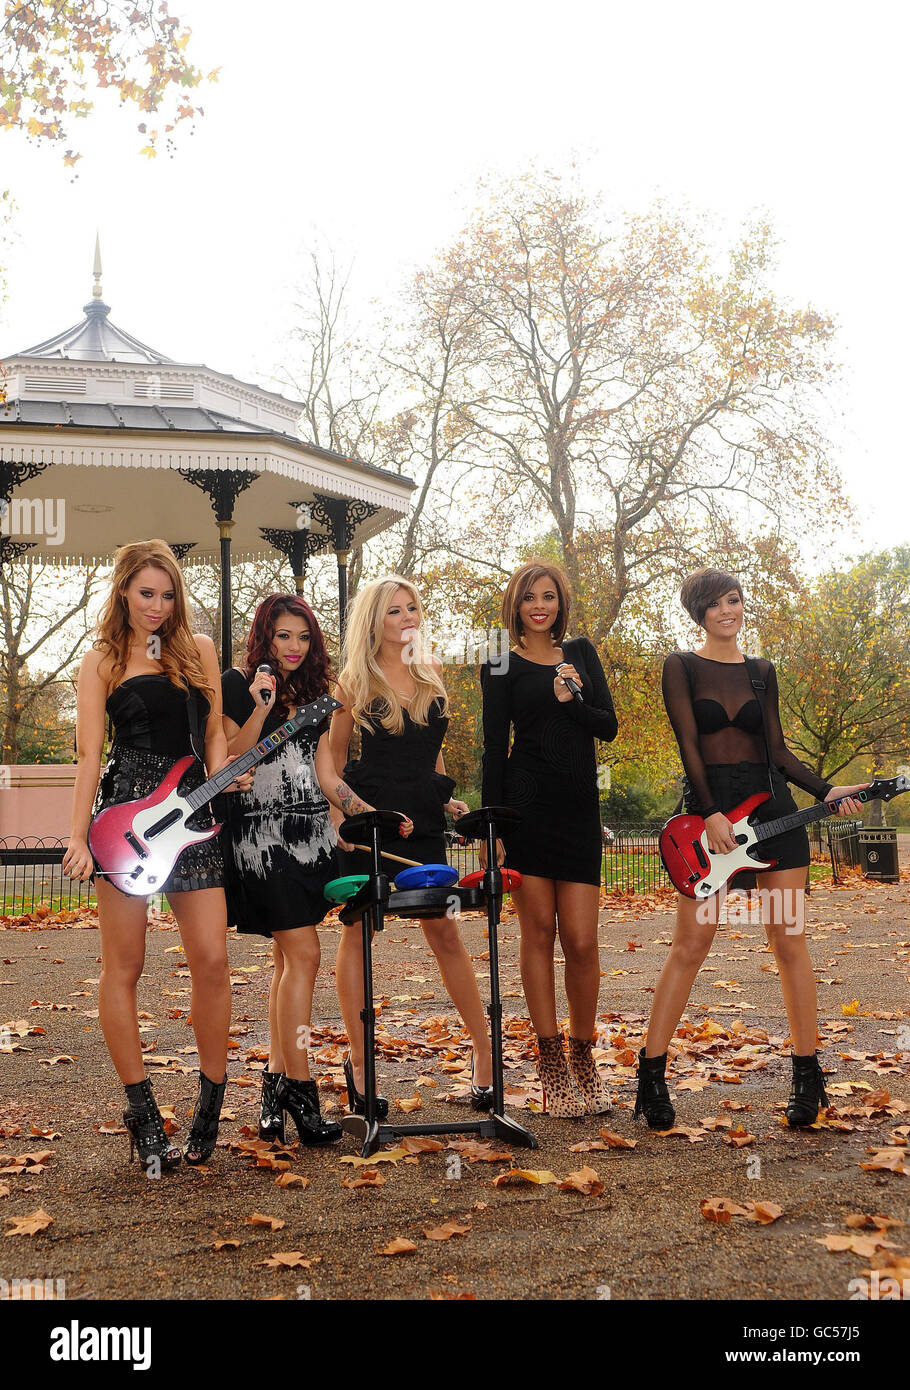 The Saturdays launch 'Band Hero' - London - Stock Image